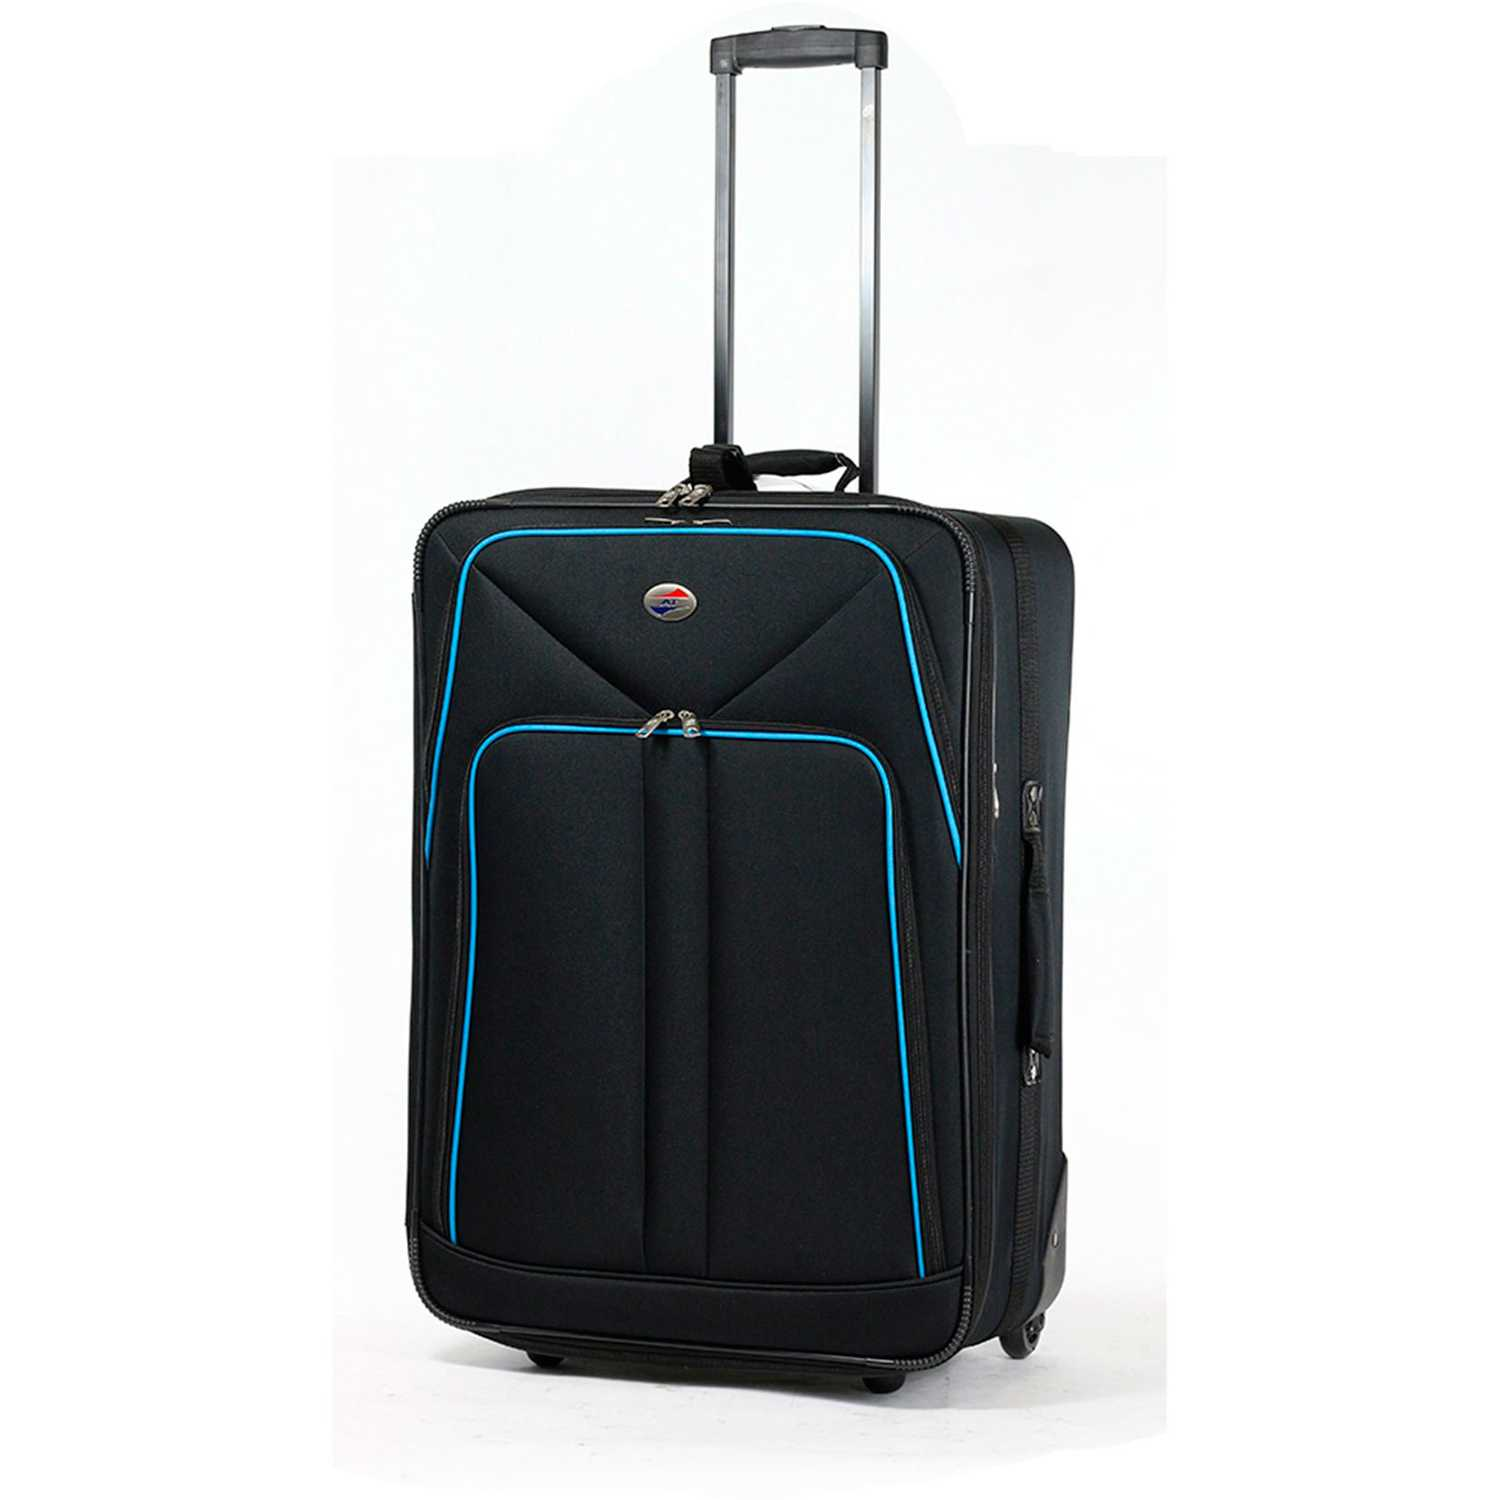 Maleta  American tourister Negro upright 25 black tour ii